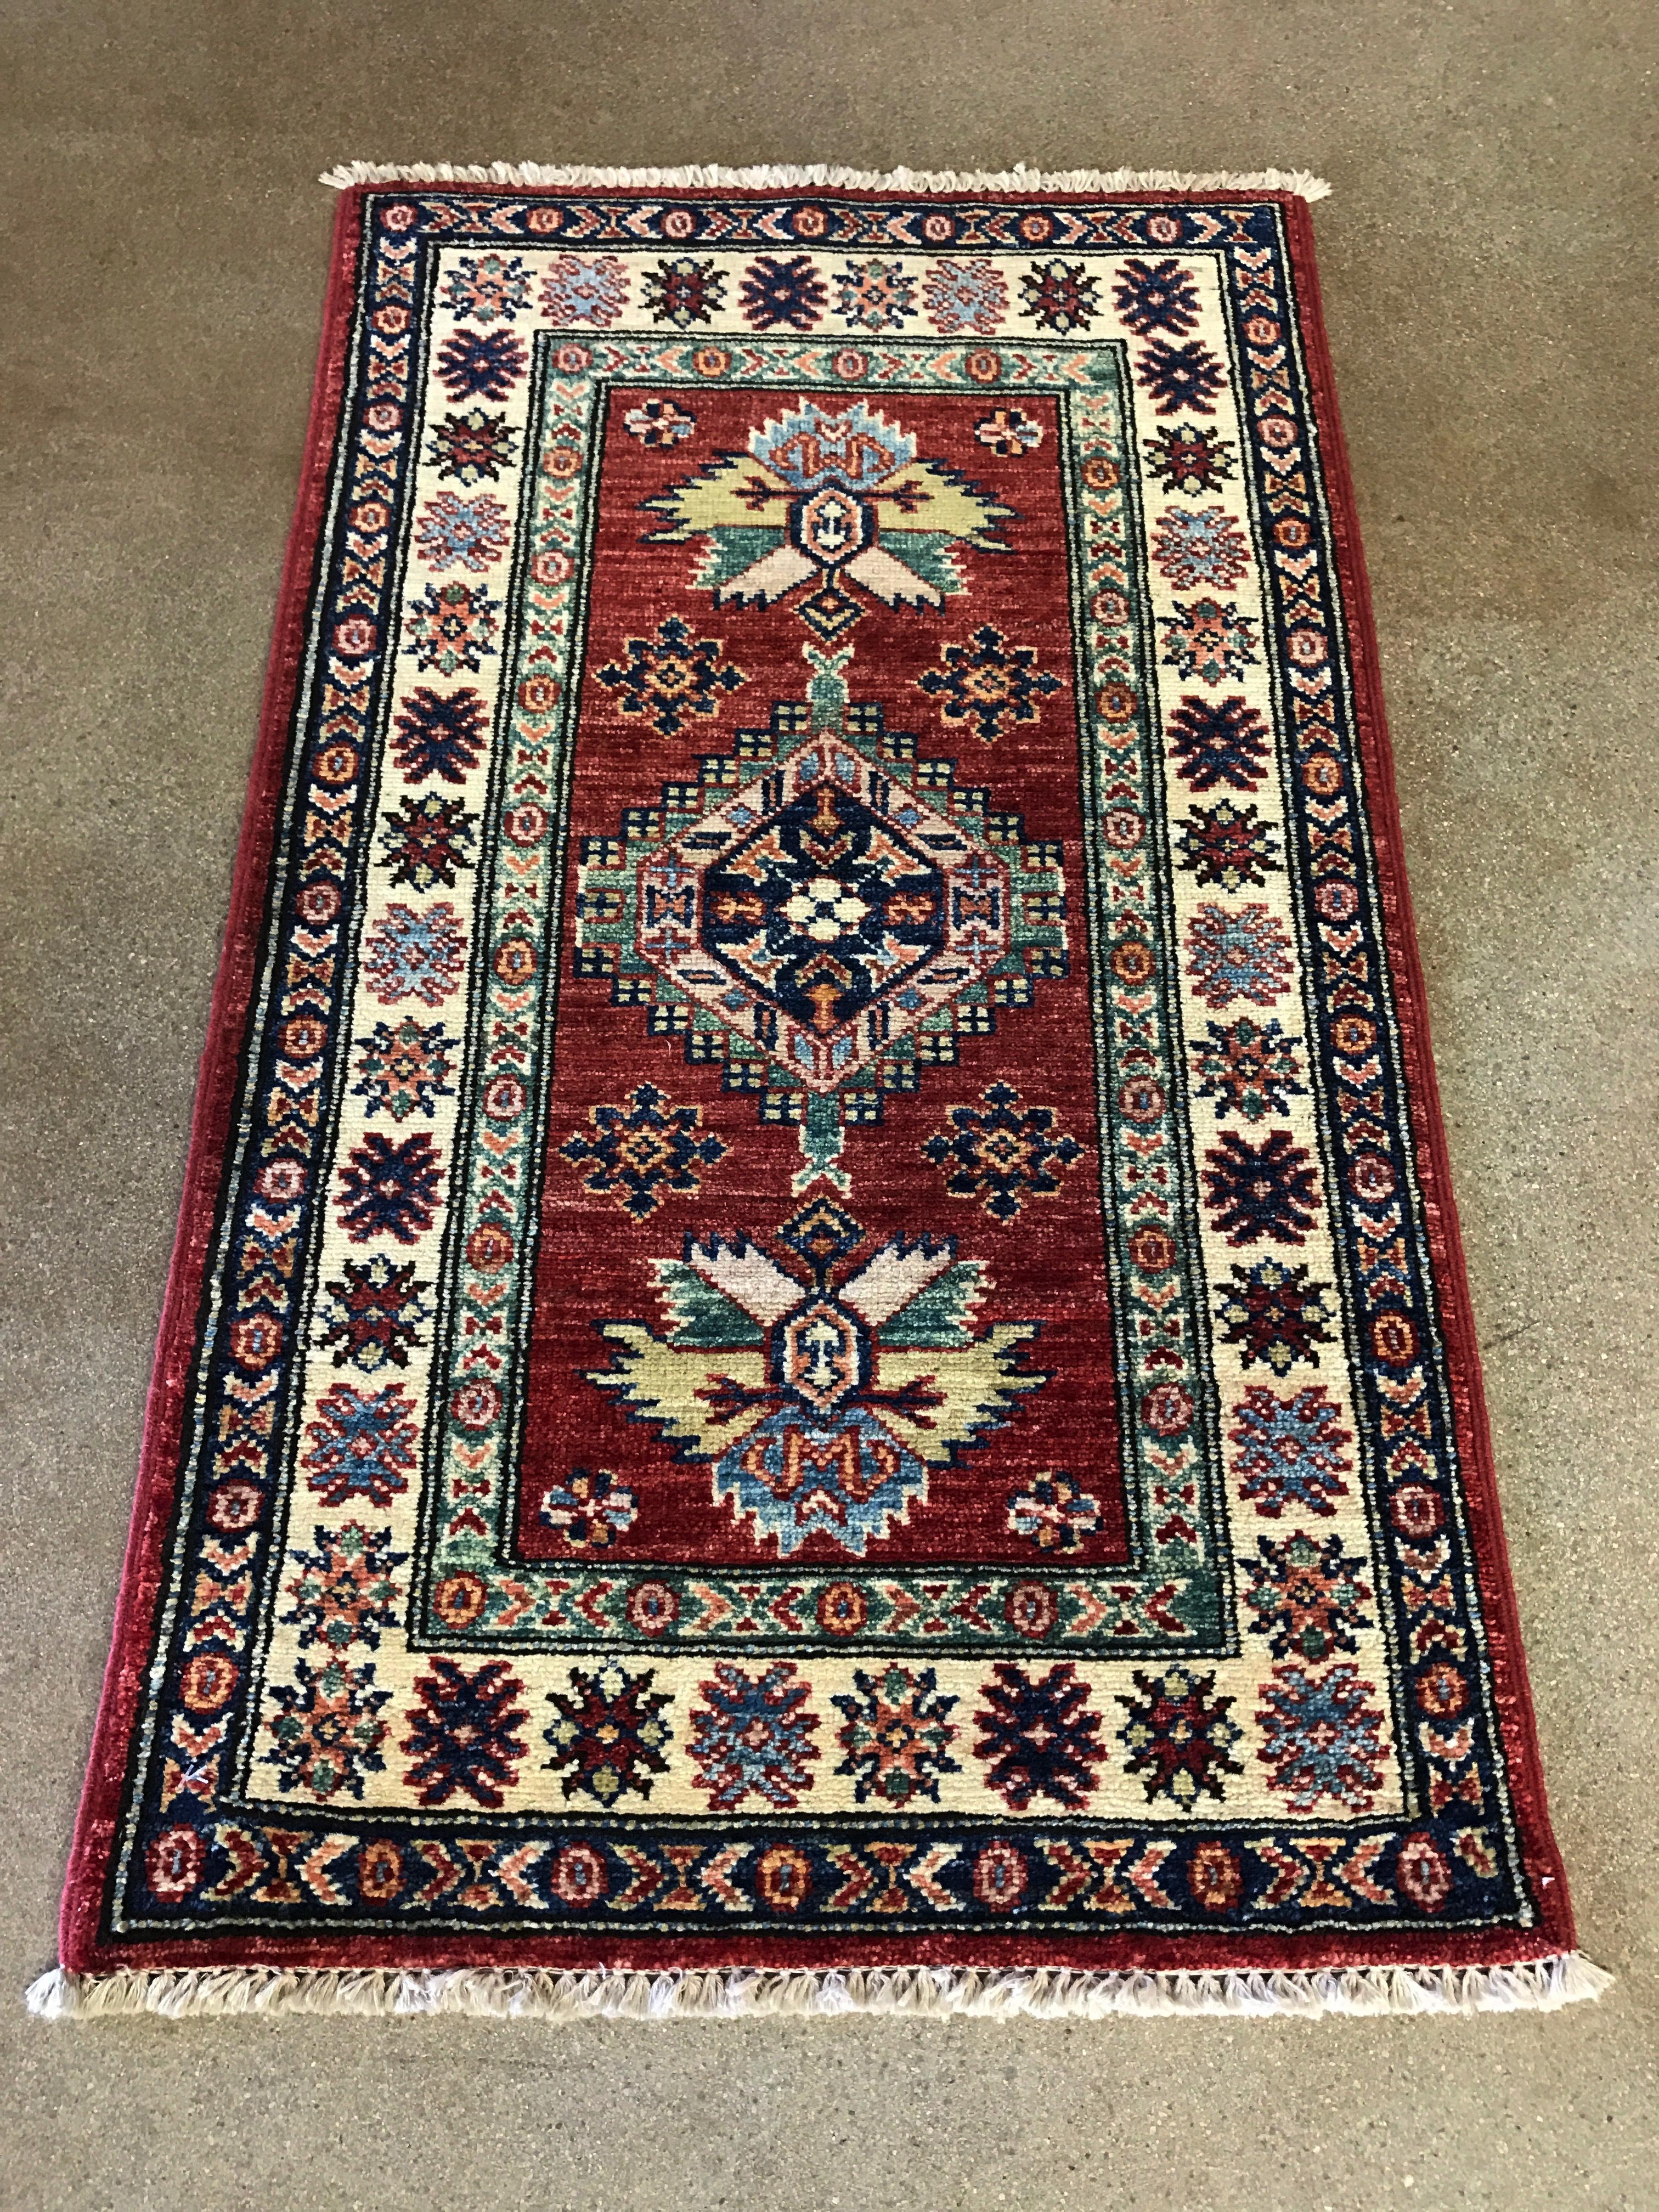 Southwestern Rugs Amp Carpets In Scottsdale Az Pv Rugs